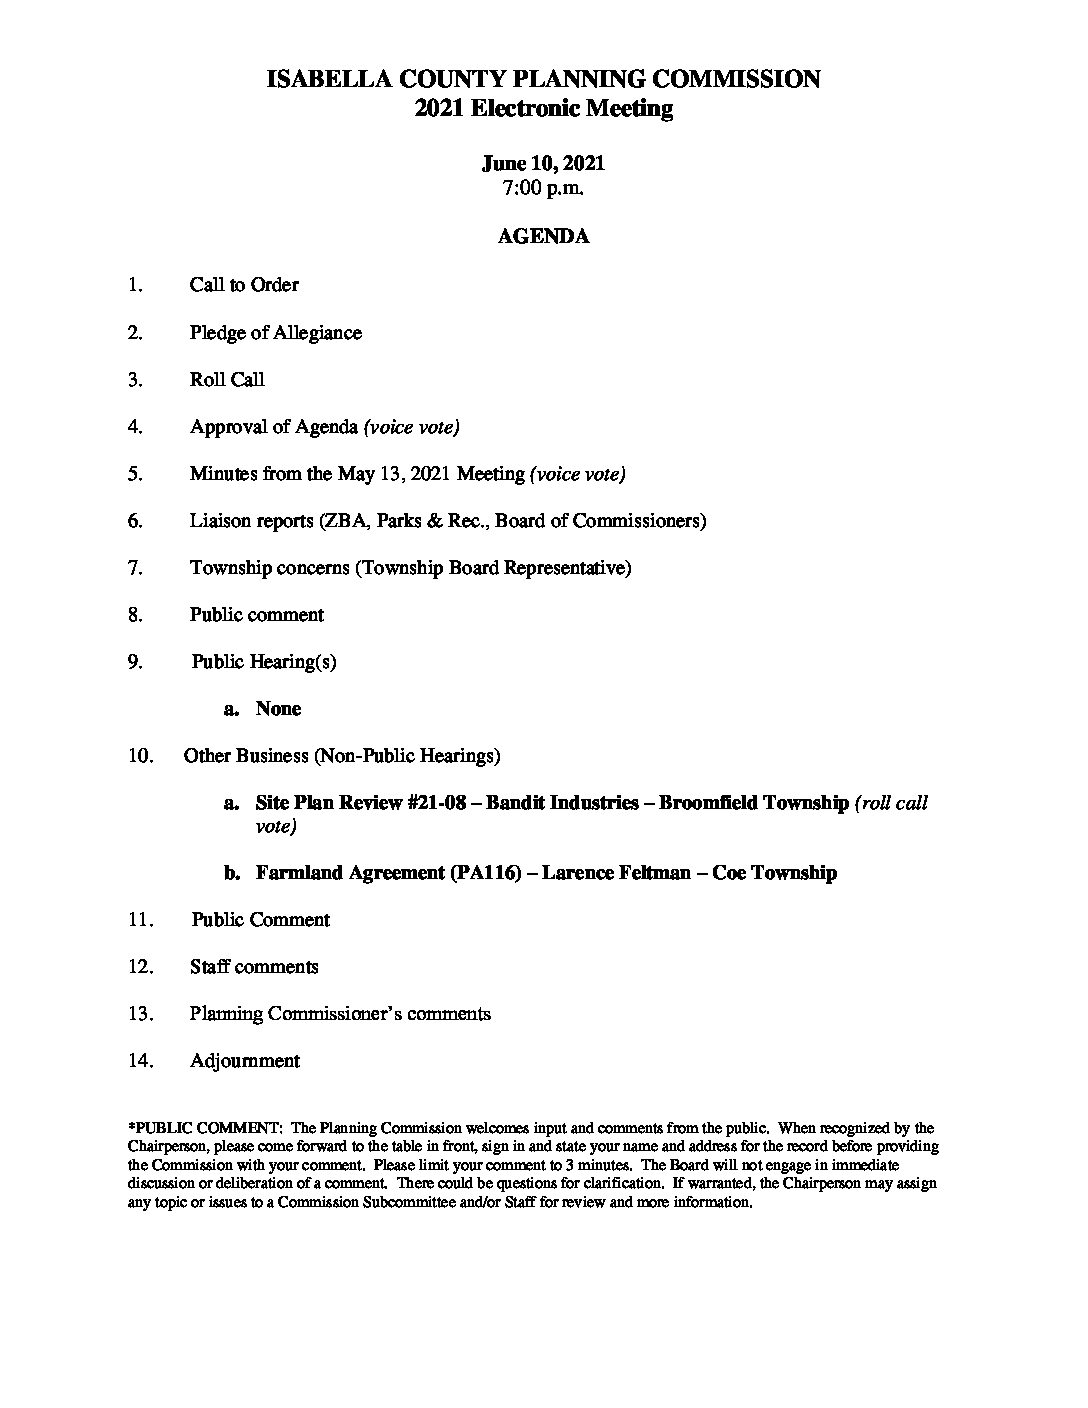 preview image of first page June 10, 2021 Agenda